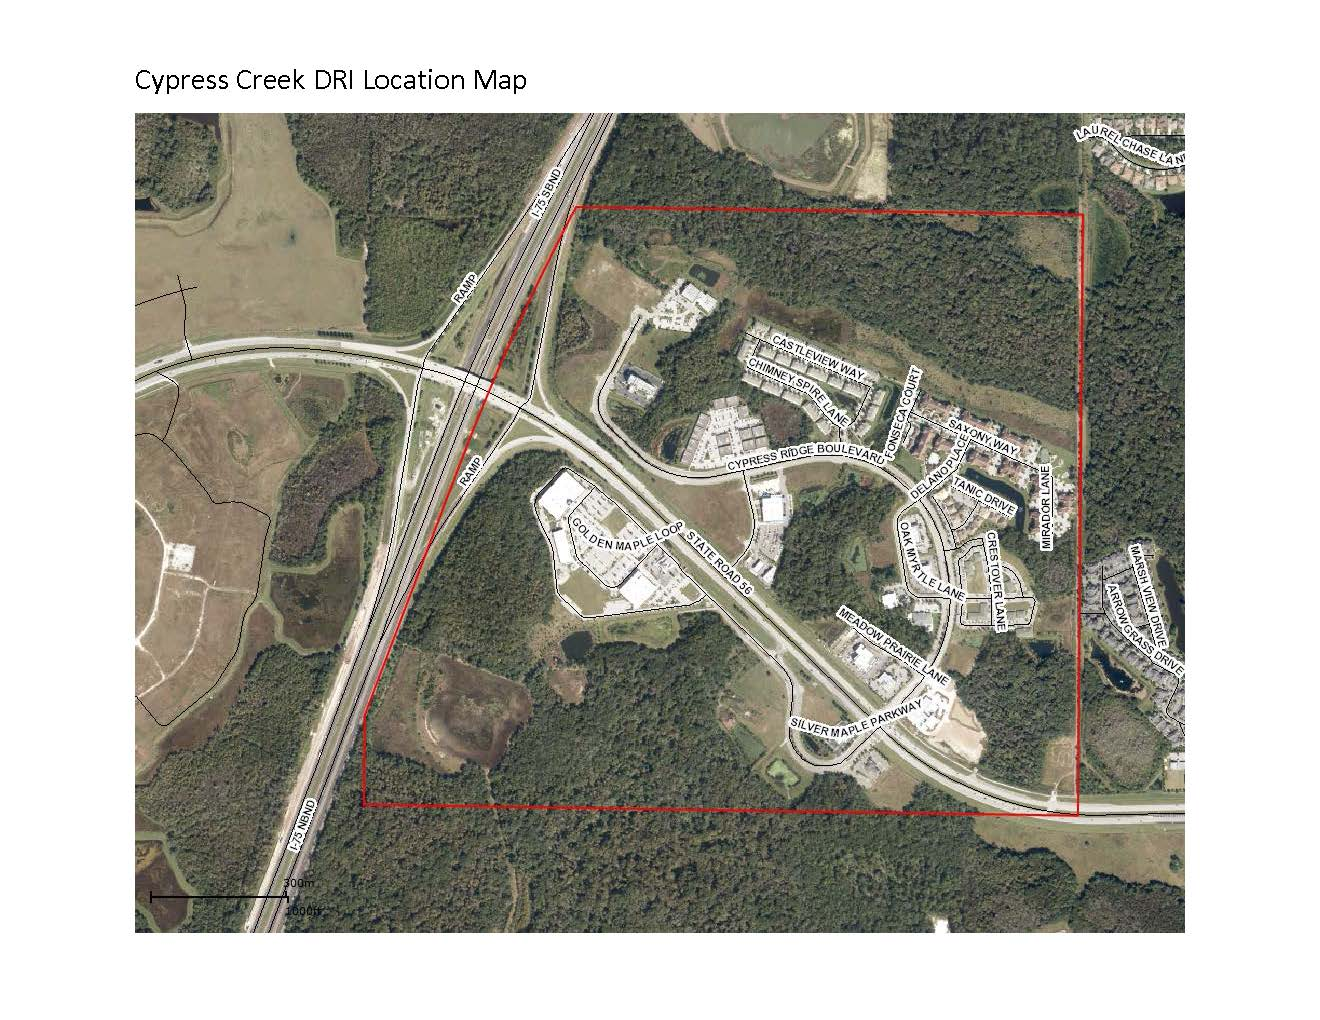 Cypress Creek DRI Location Map